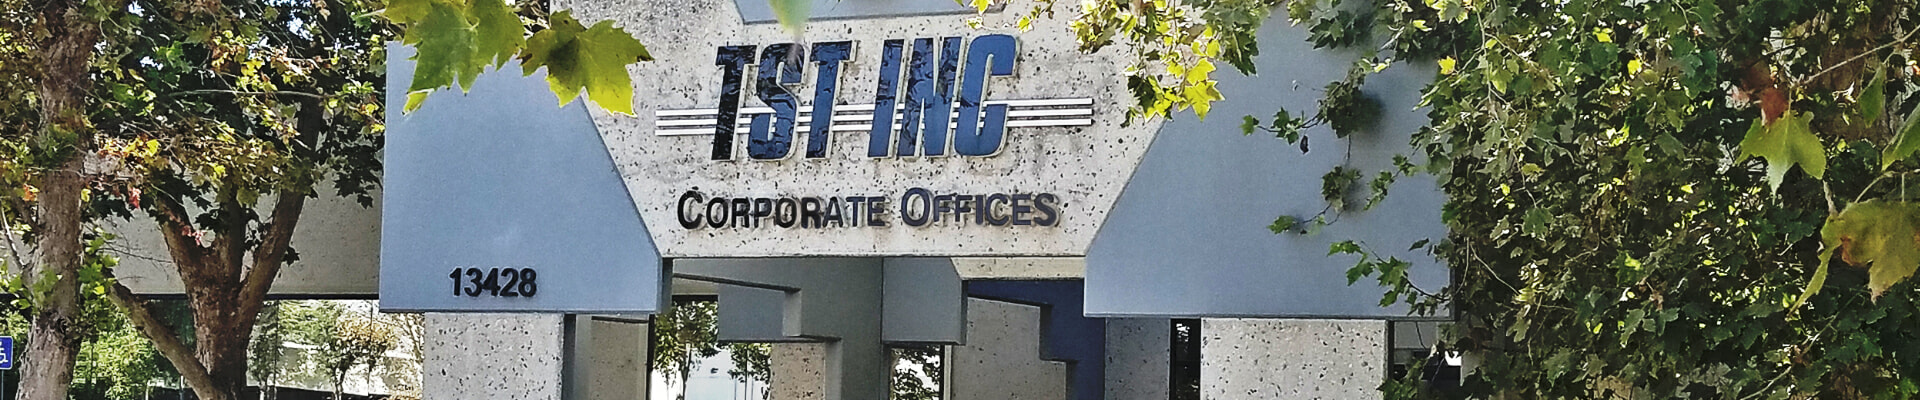 TST Inc. Corporate Offices Building